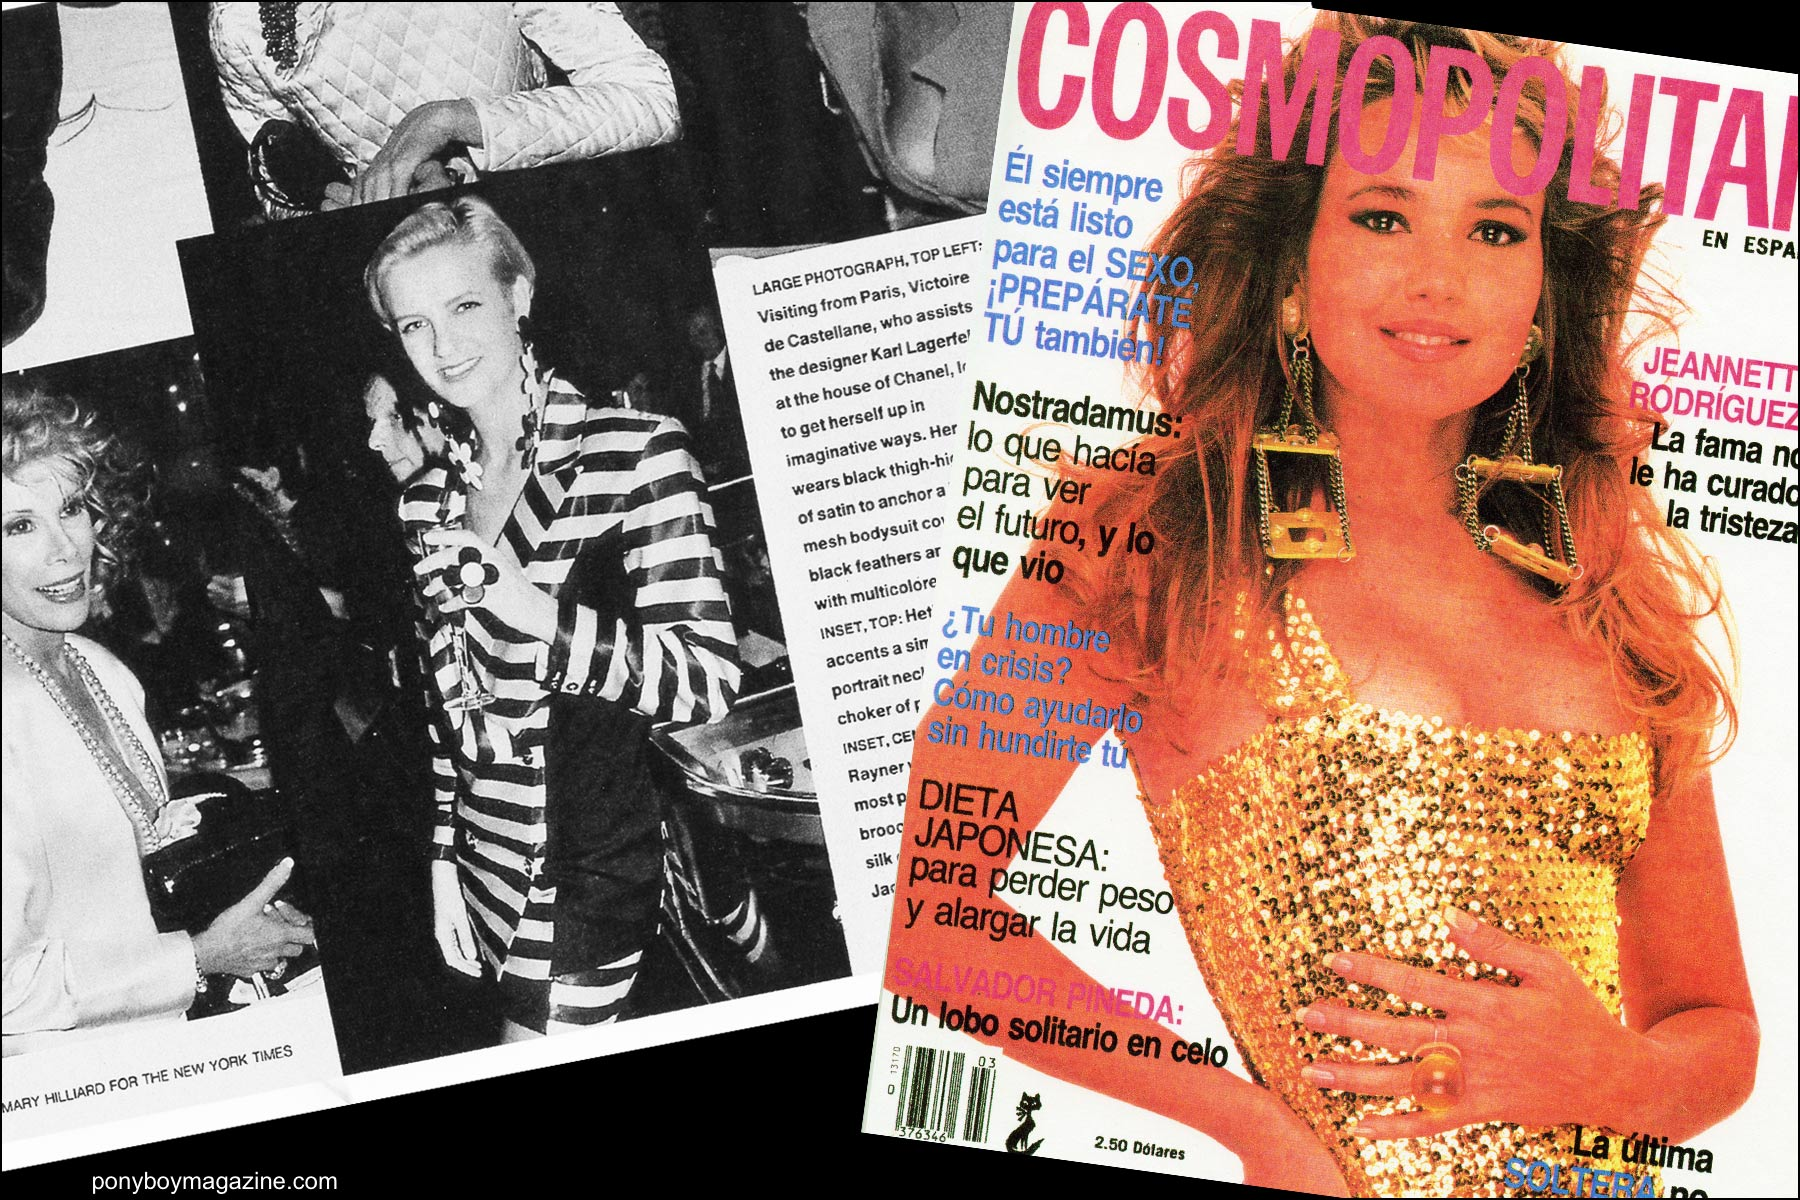 Tearsheet of Cosmopolitan cover with model wearing Maria Ayala jewelry. Ponyboy magazine NY.